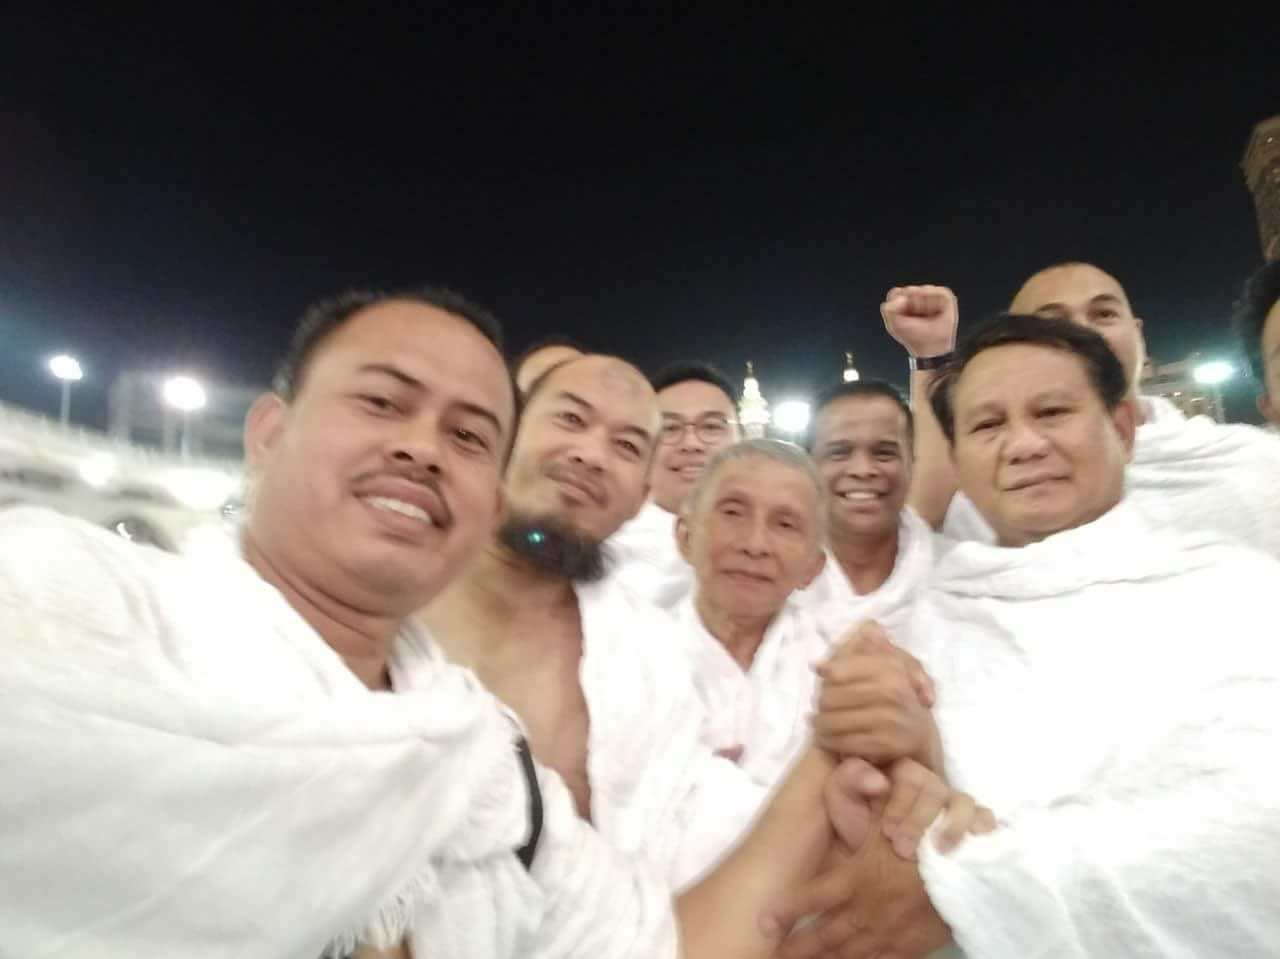 Amien Rais flaunts meeting with Prabowo, Rizieq on Instagram